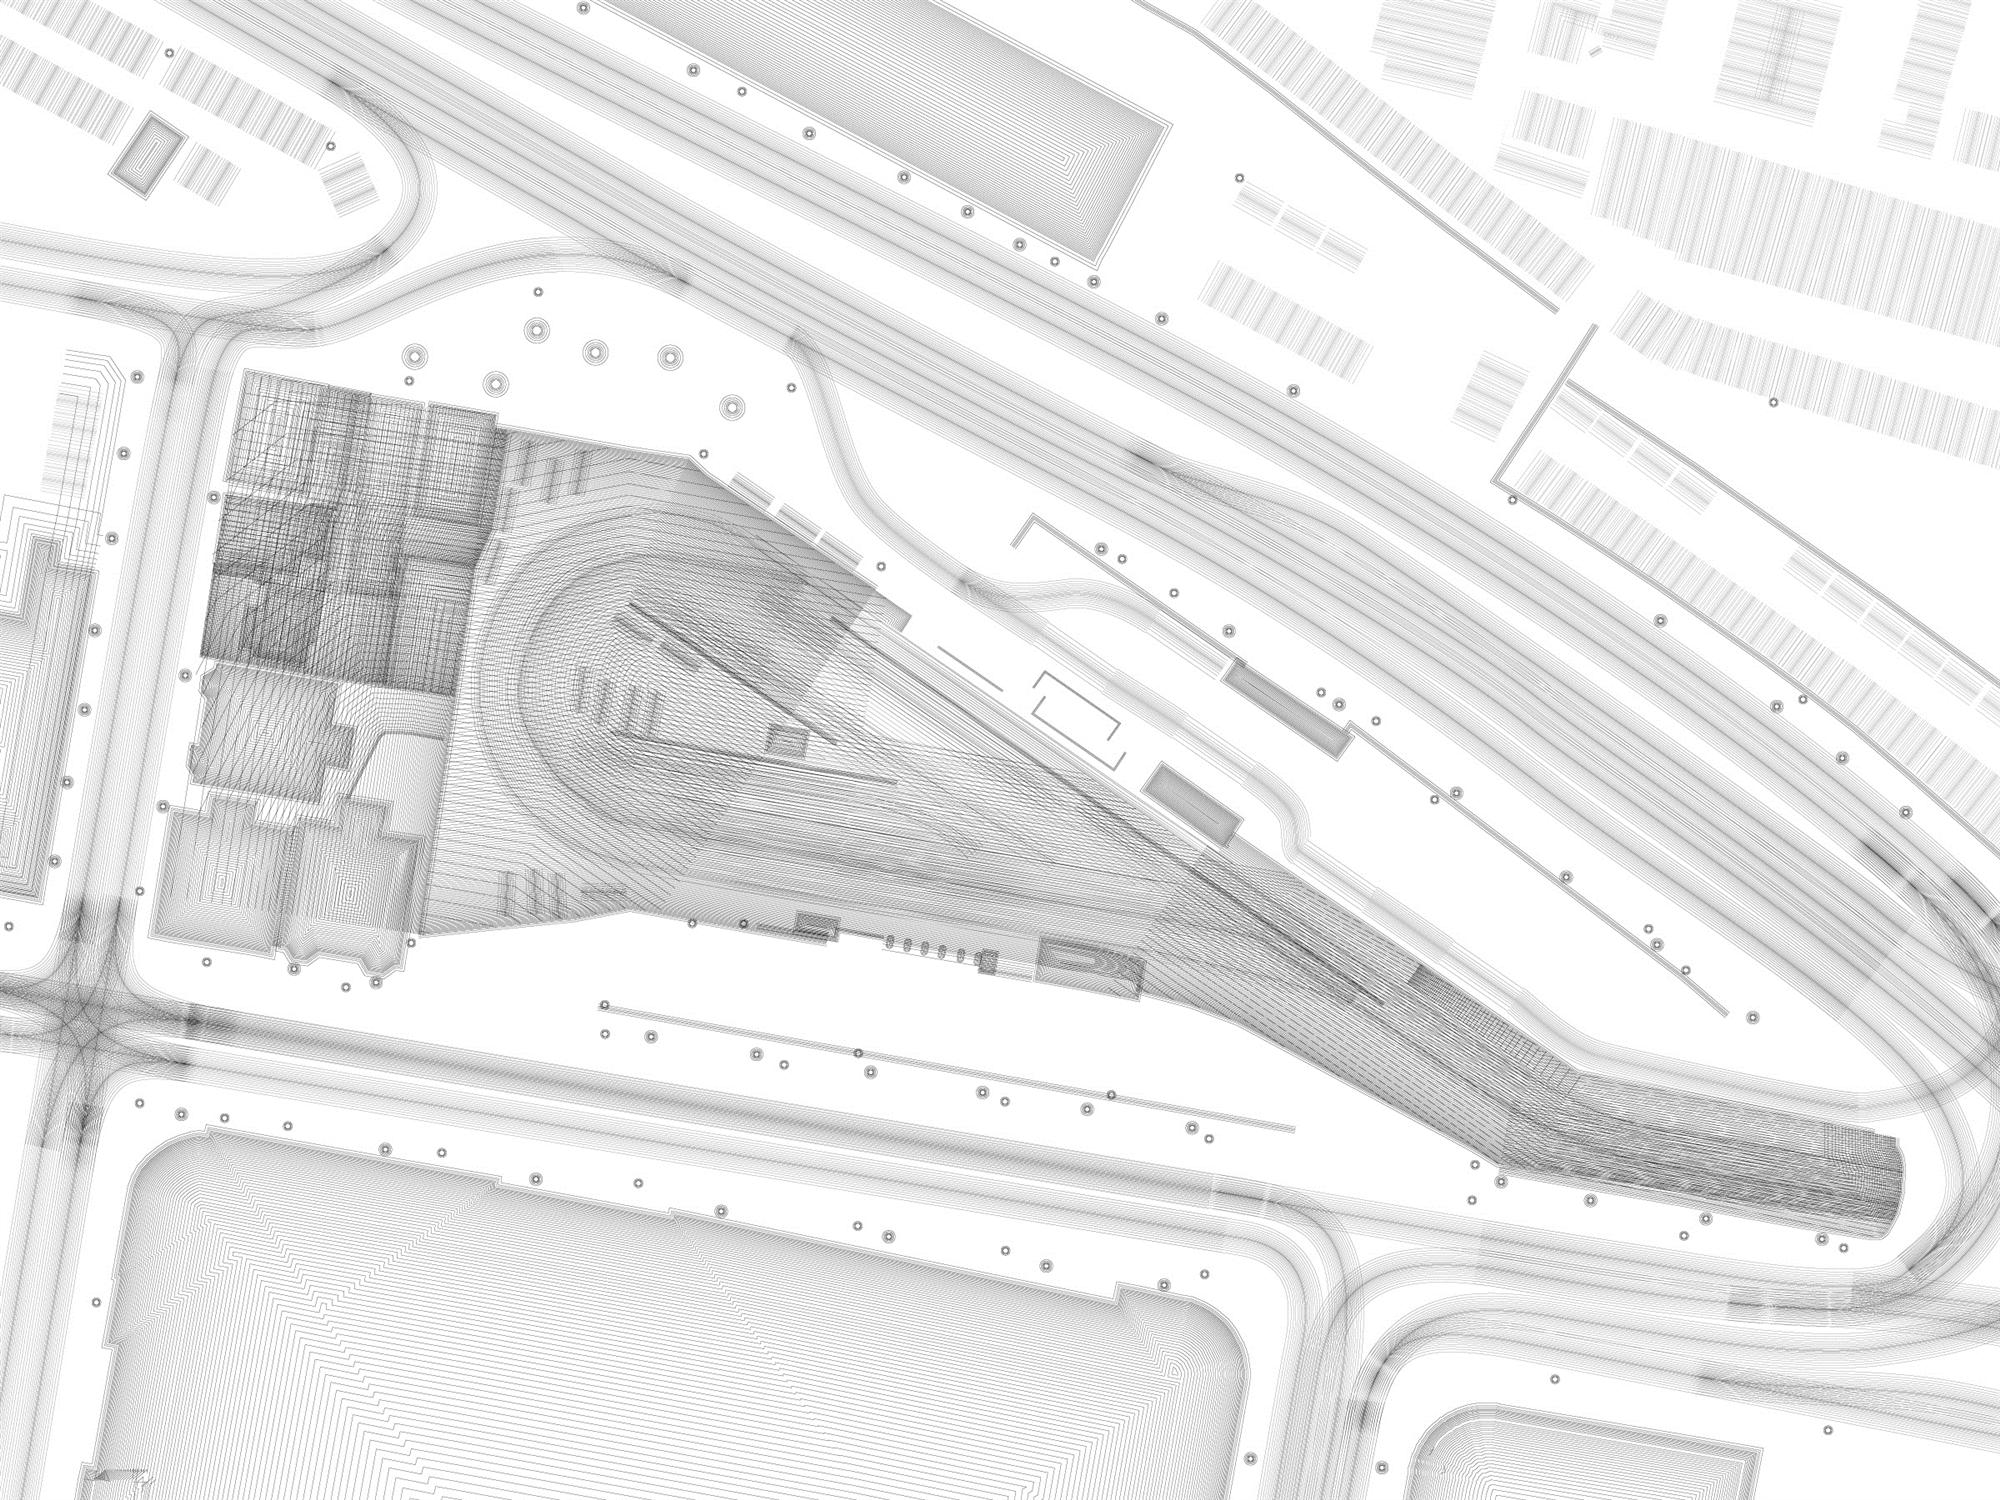 This drawing exploresall of the different kinds of barriers on the site: chain-link fences, iron bar fences, wood fences, brick walls, trains, parked cars, etc. The drawing shows the effect of those barriers on where pedestrians can go in the site, using only parallel lines. As the lines cross and overlay they revealareas which are affected by more barriers and are thus harder to access.